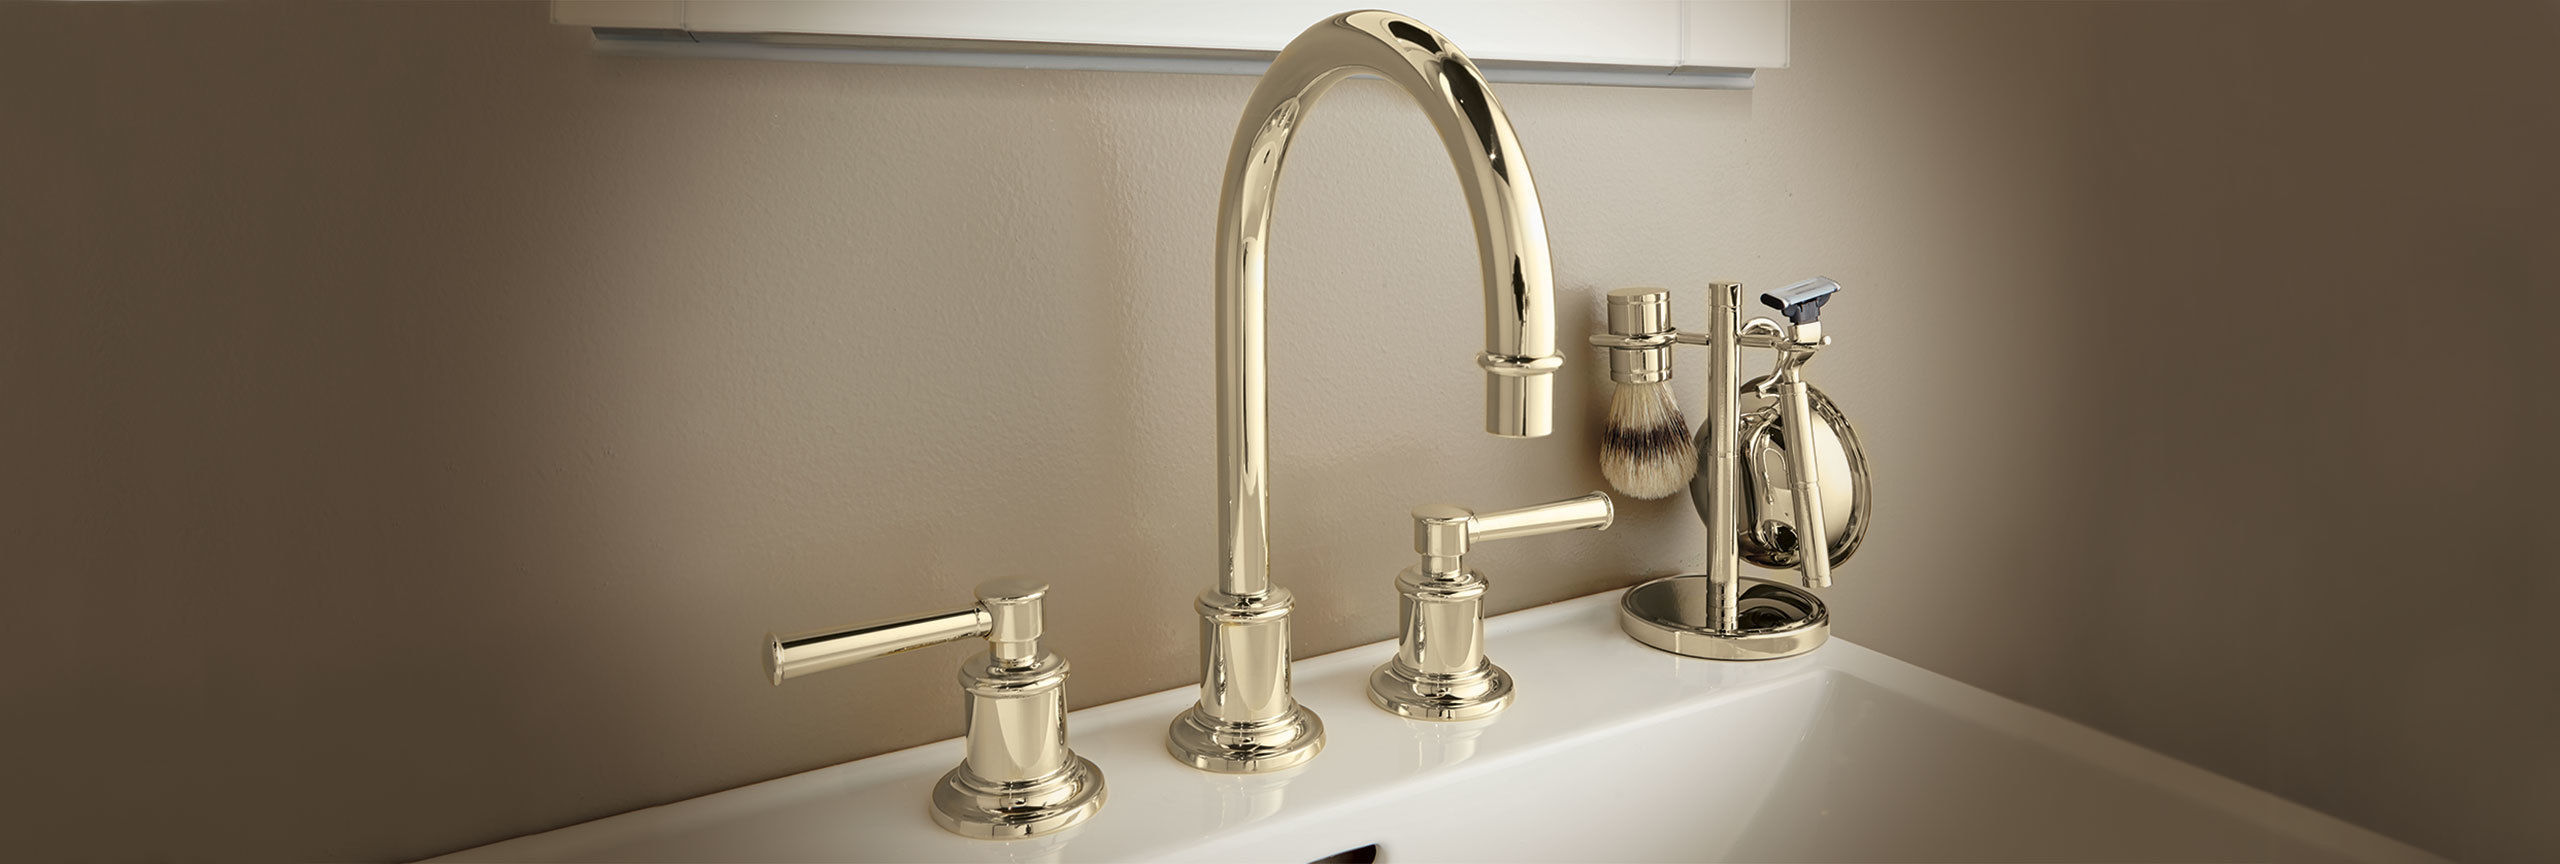 bathroom series miramar widespread faucet with high spout on sink